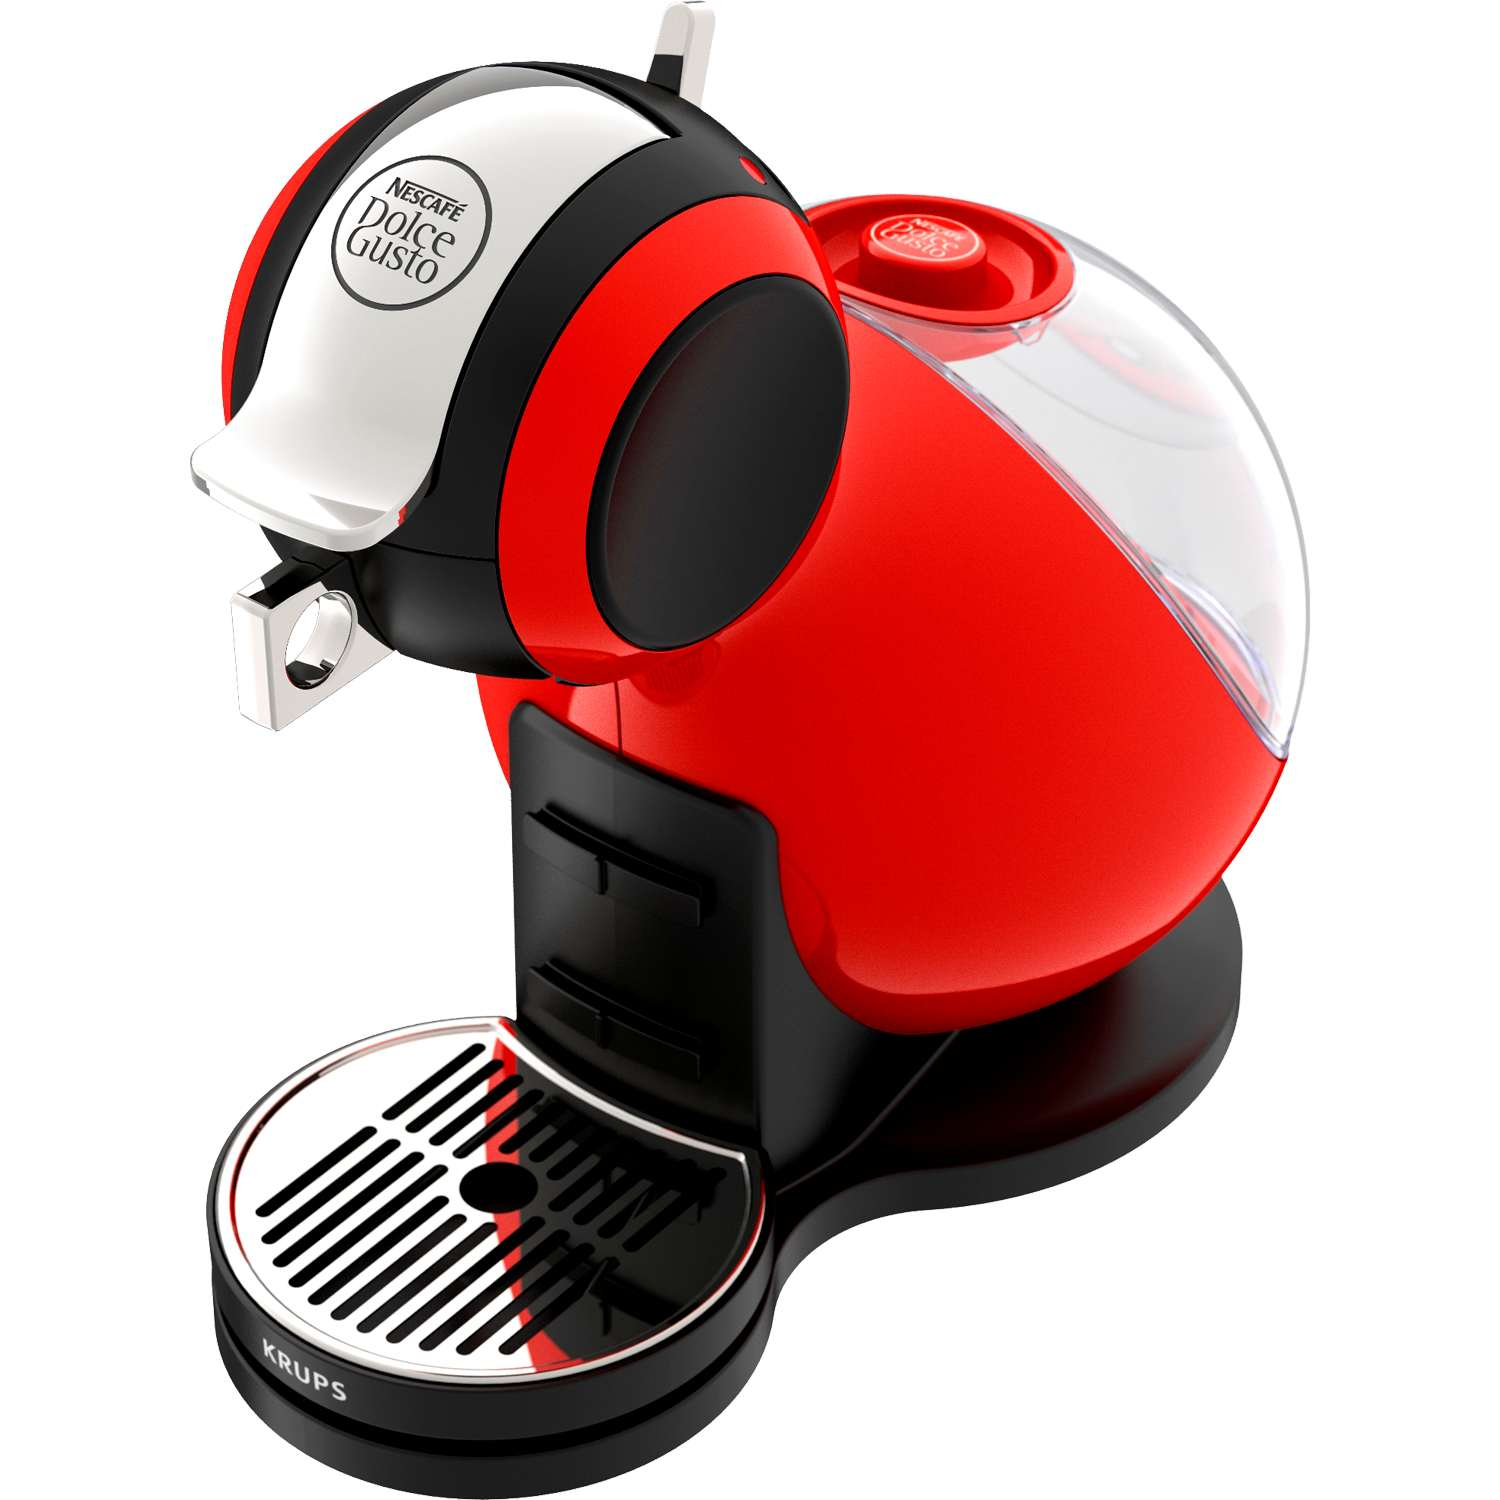 krups nescafe dolce gusto melody 3 coffee machine 15 bar 1 3l tank red kp2205. Black Bedroom Furniture Sets. Home Design Ideas